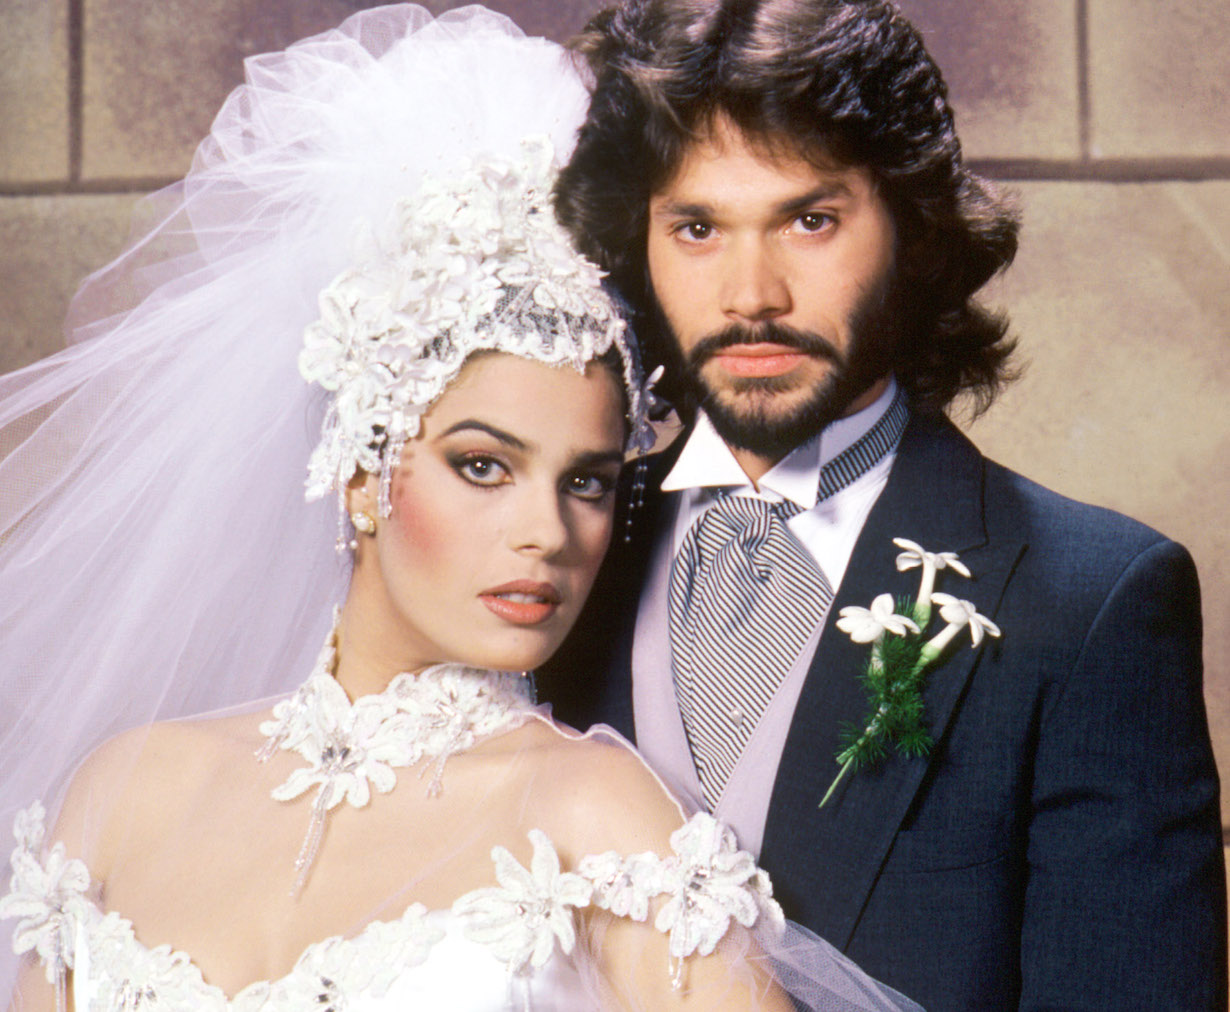 days of our lives bo and hope wedding peter reckell kristian alfonso